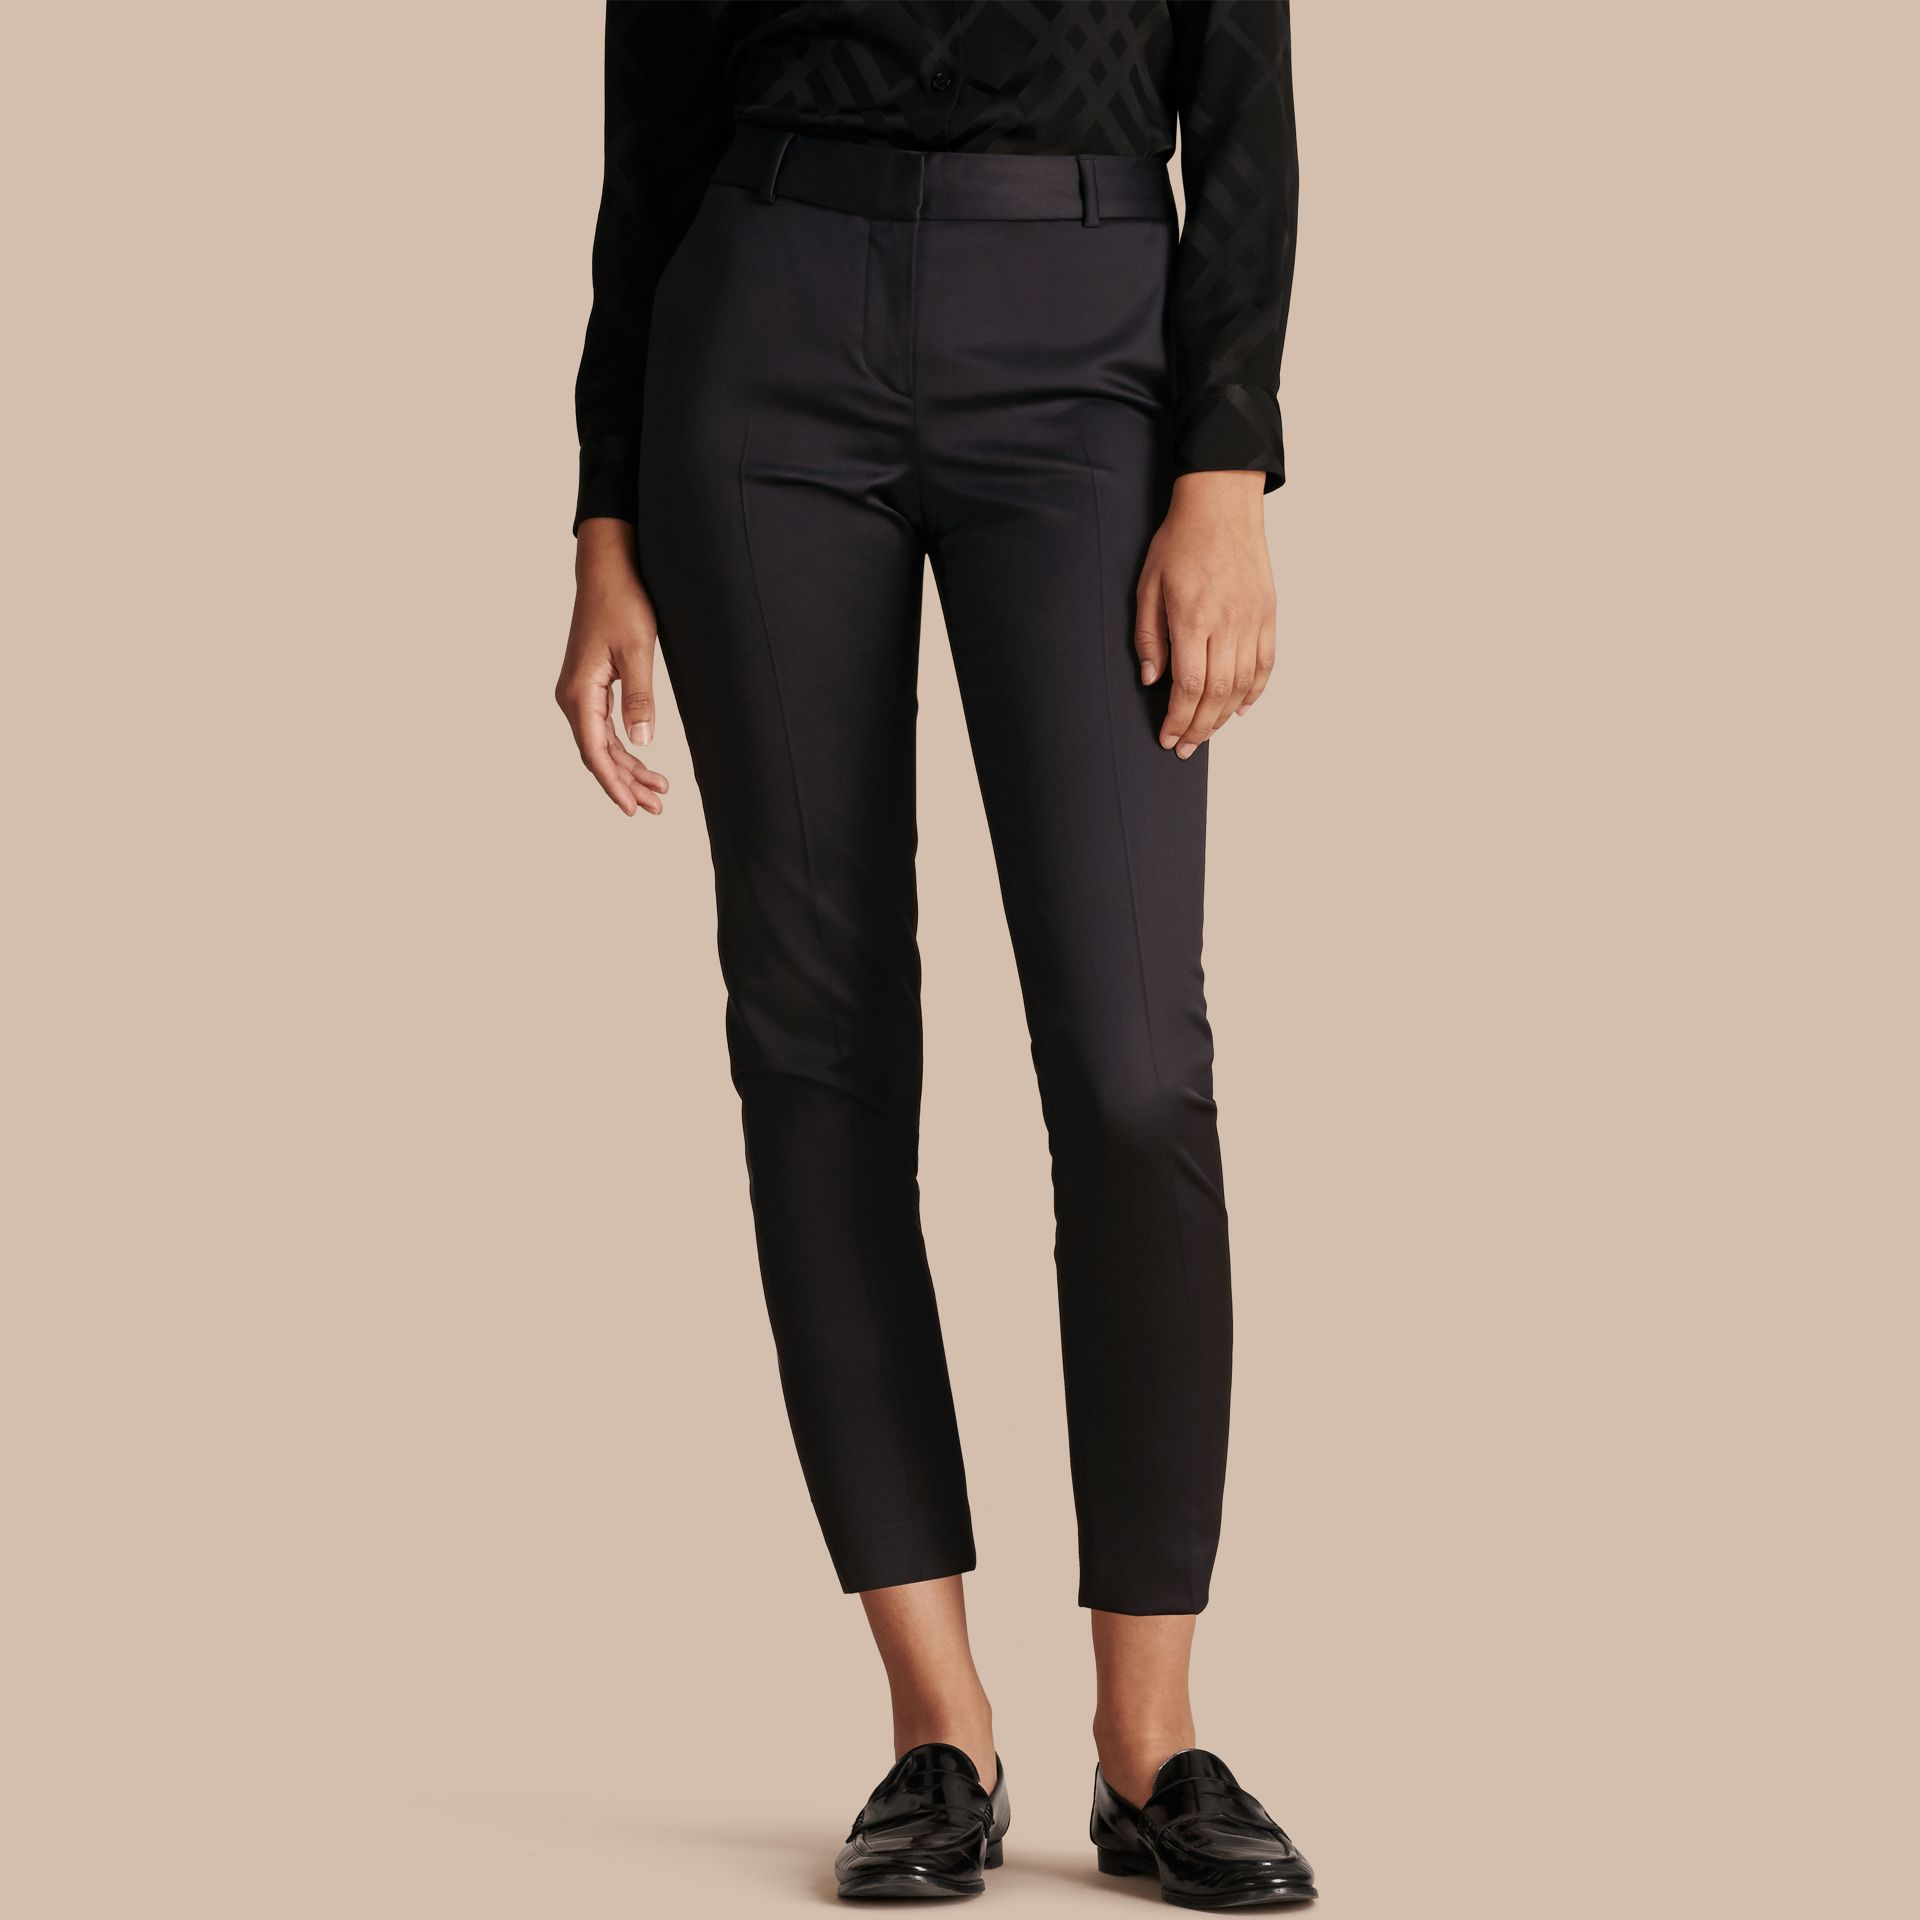 Ink Cropped Stretch Wool Tailored Trousers - gallery image 1